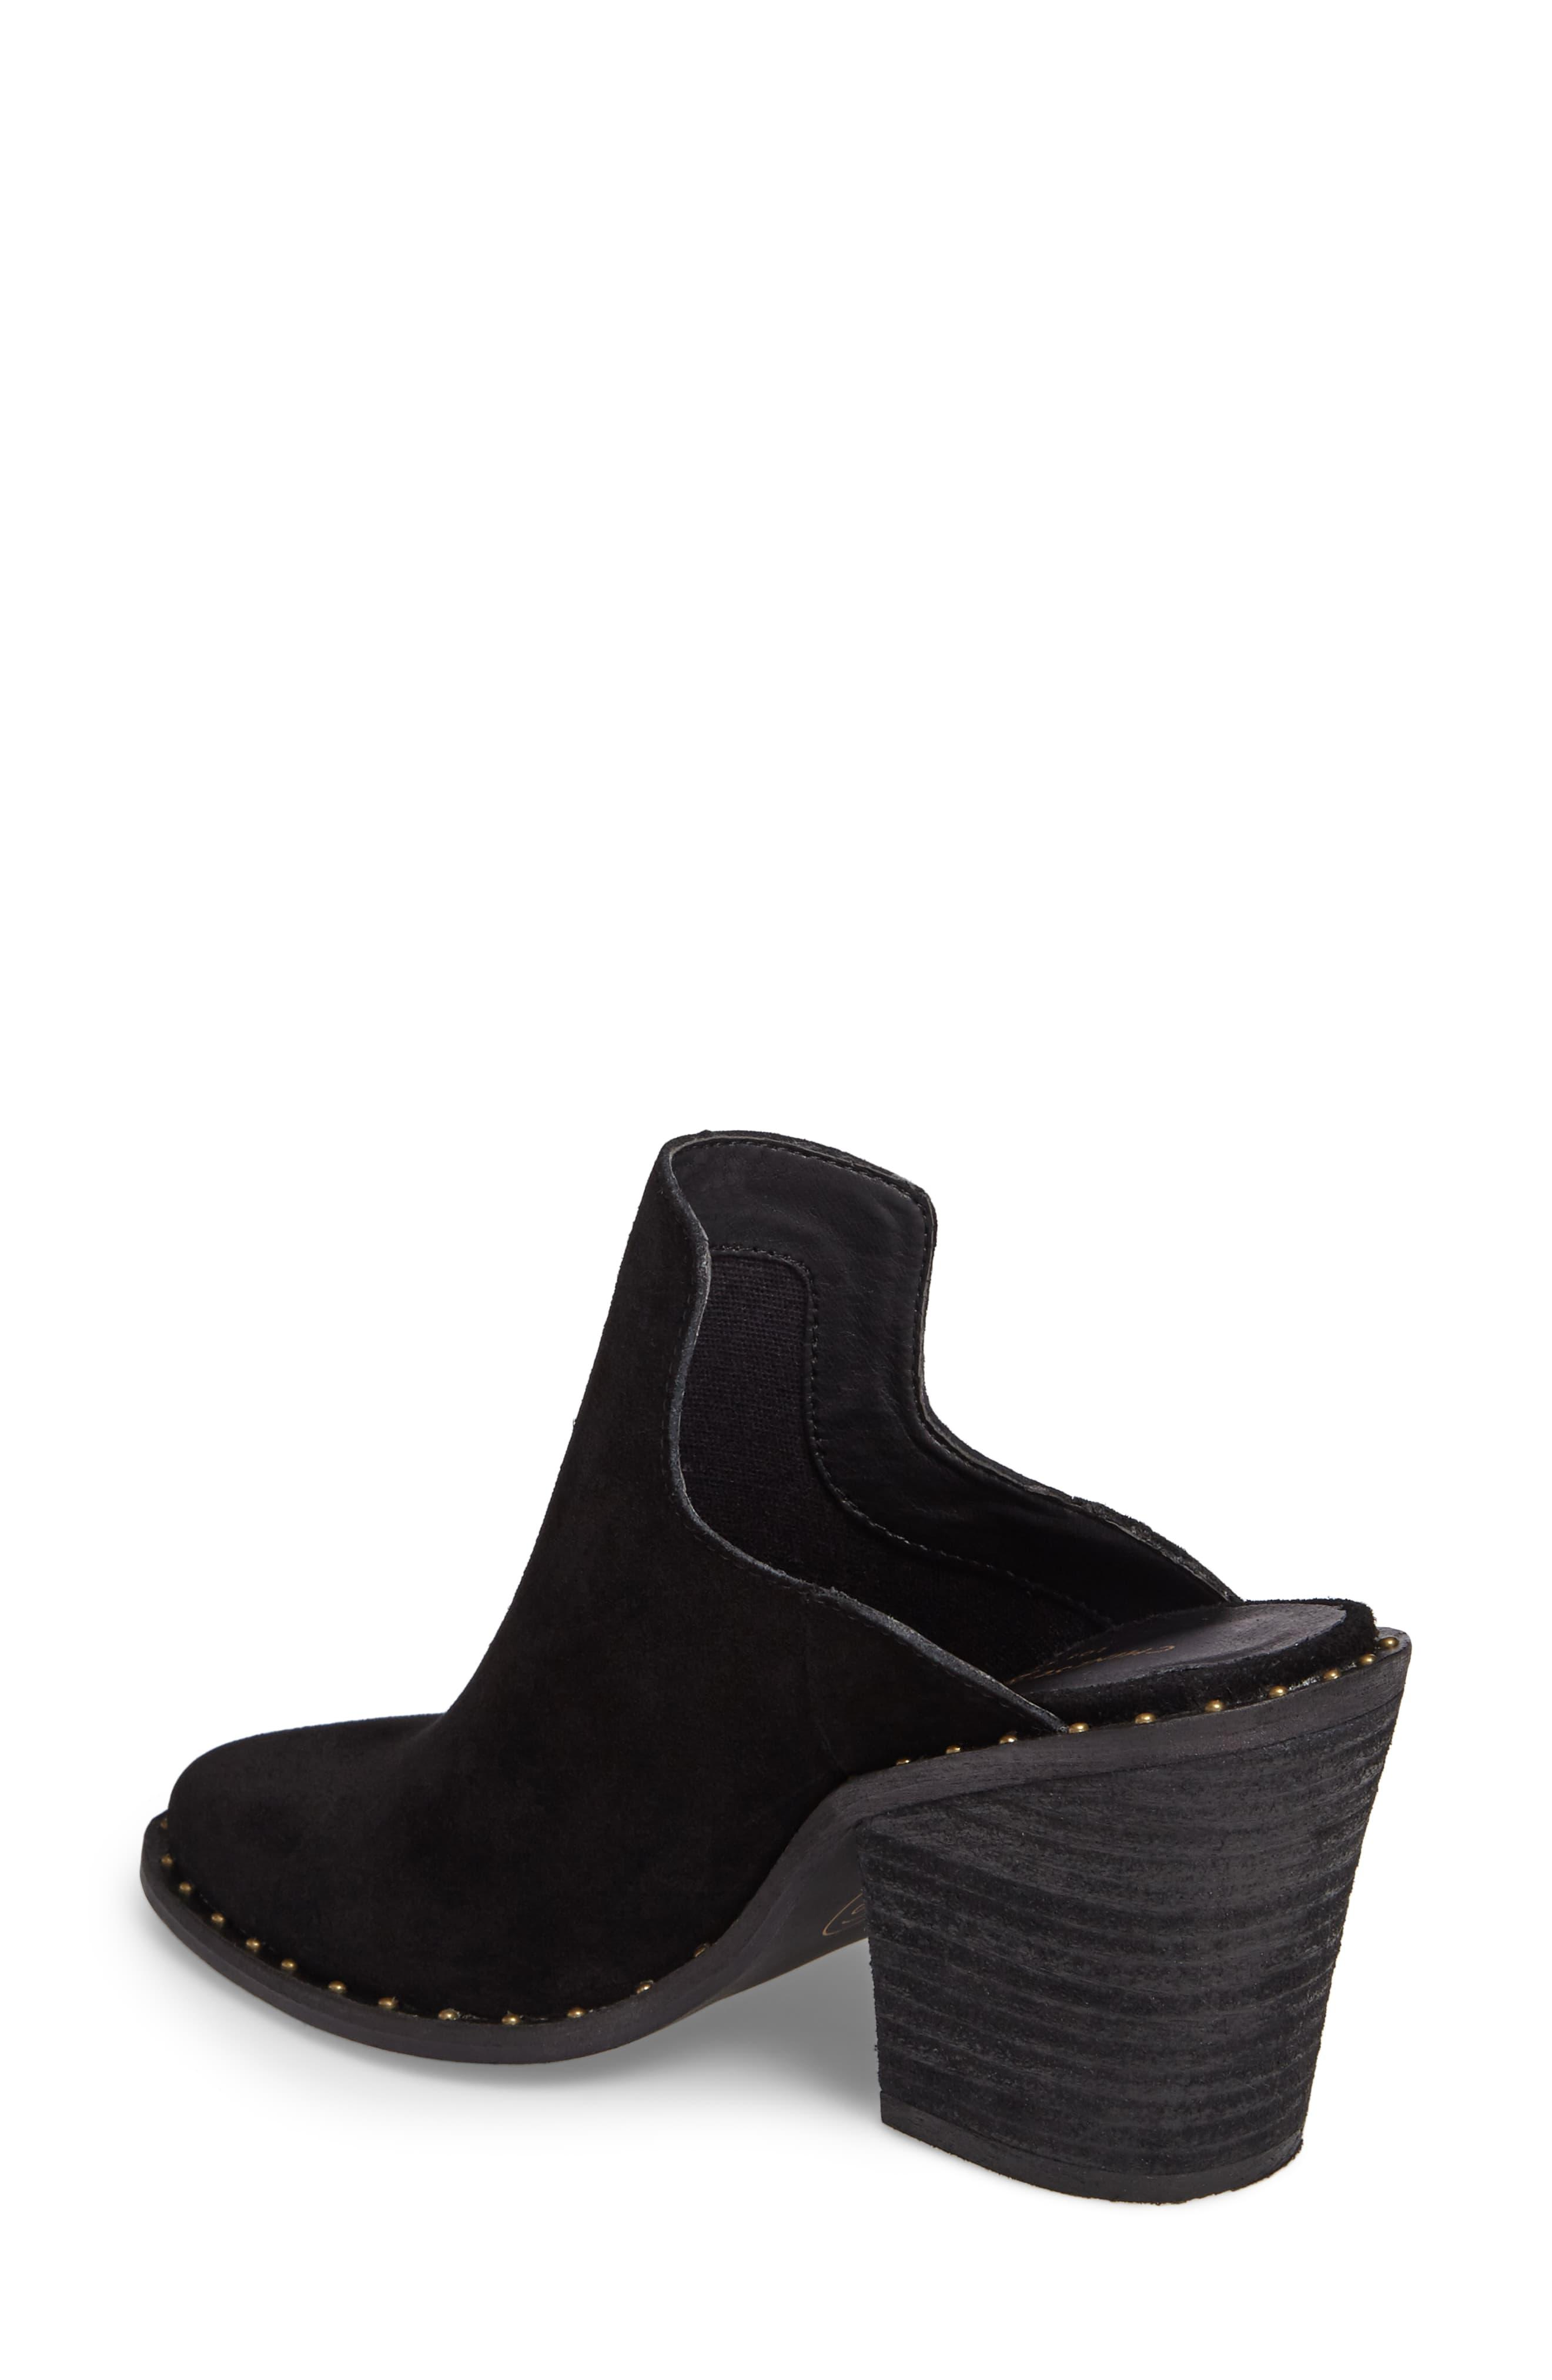 01b5d7c2d Chinese Laundry Springfield Mule in Black - Lyst